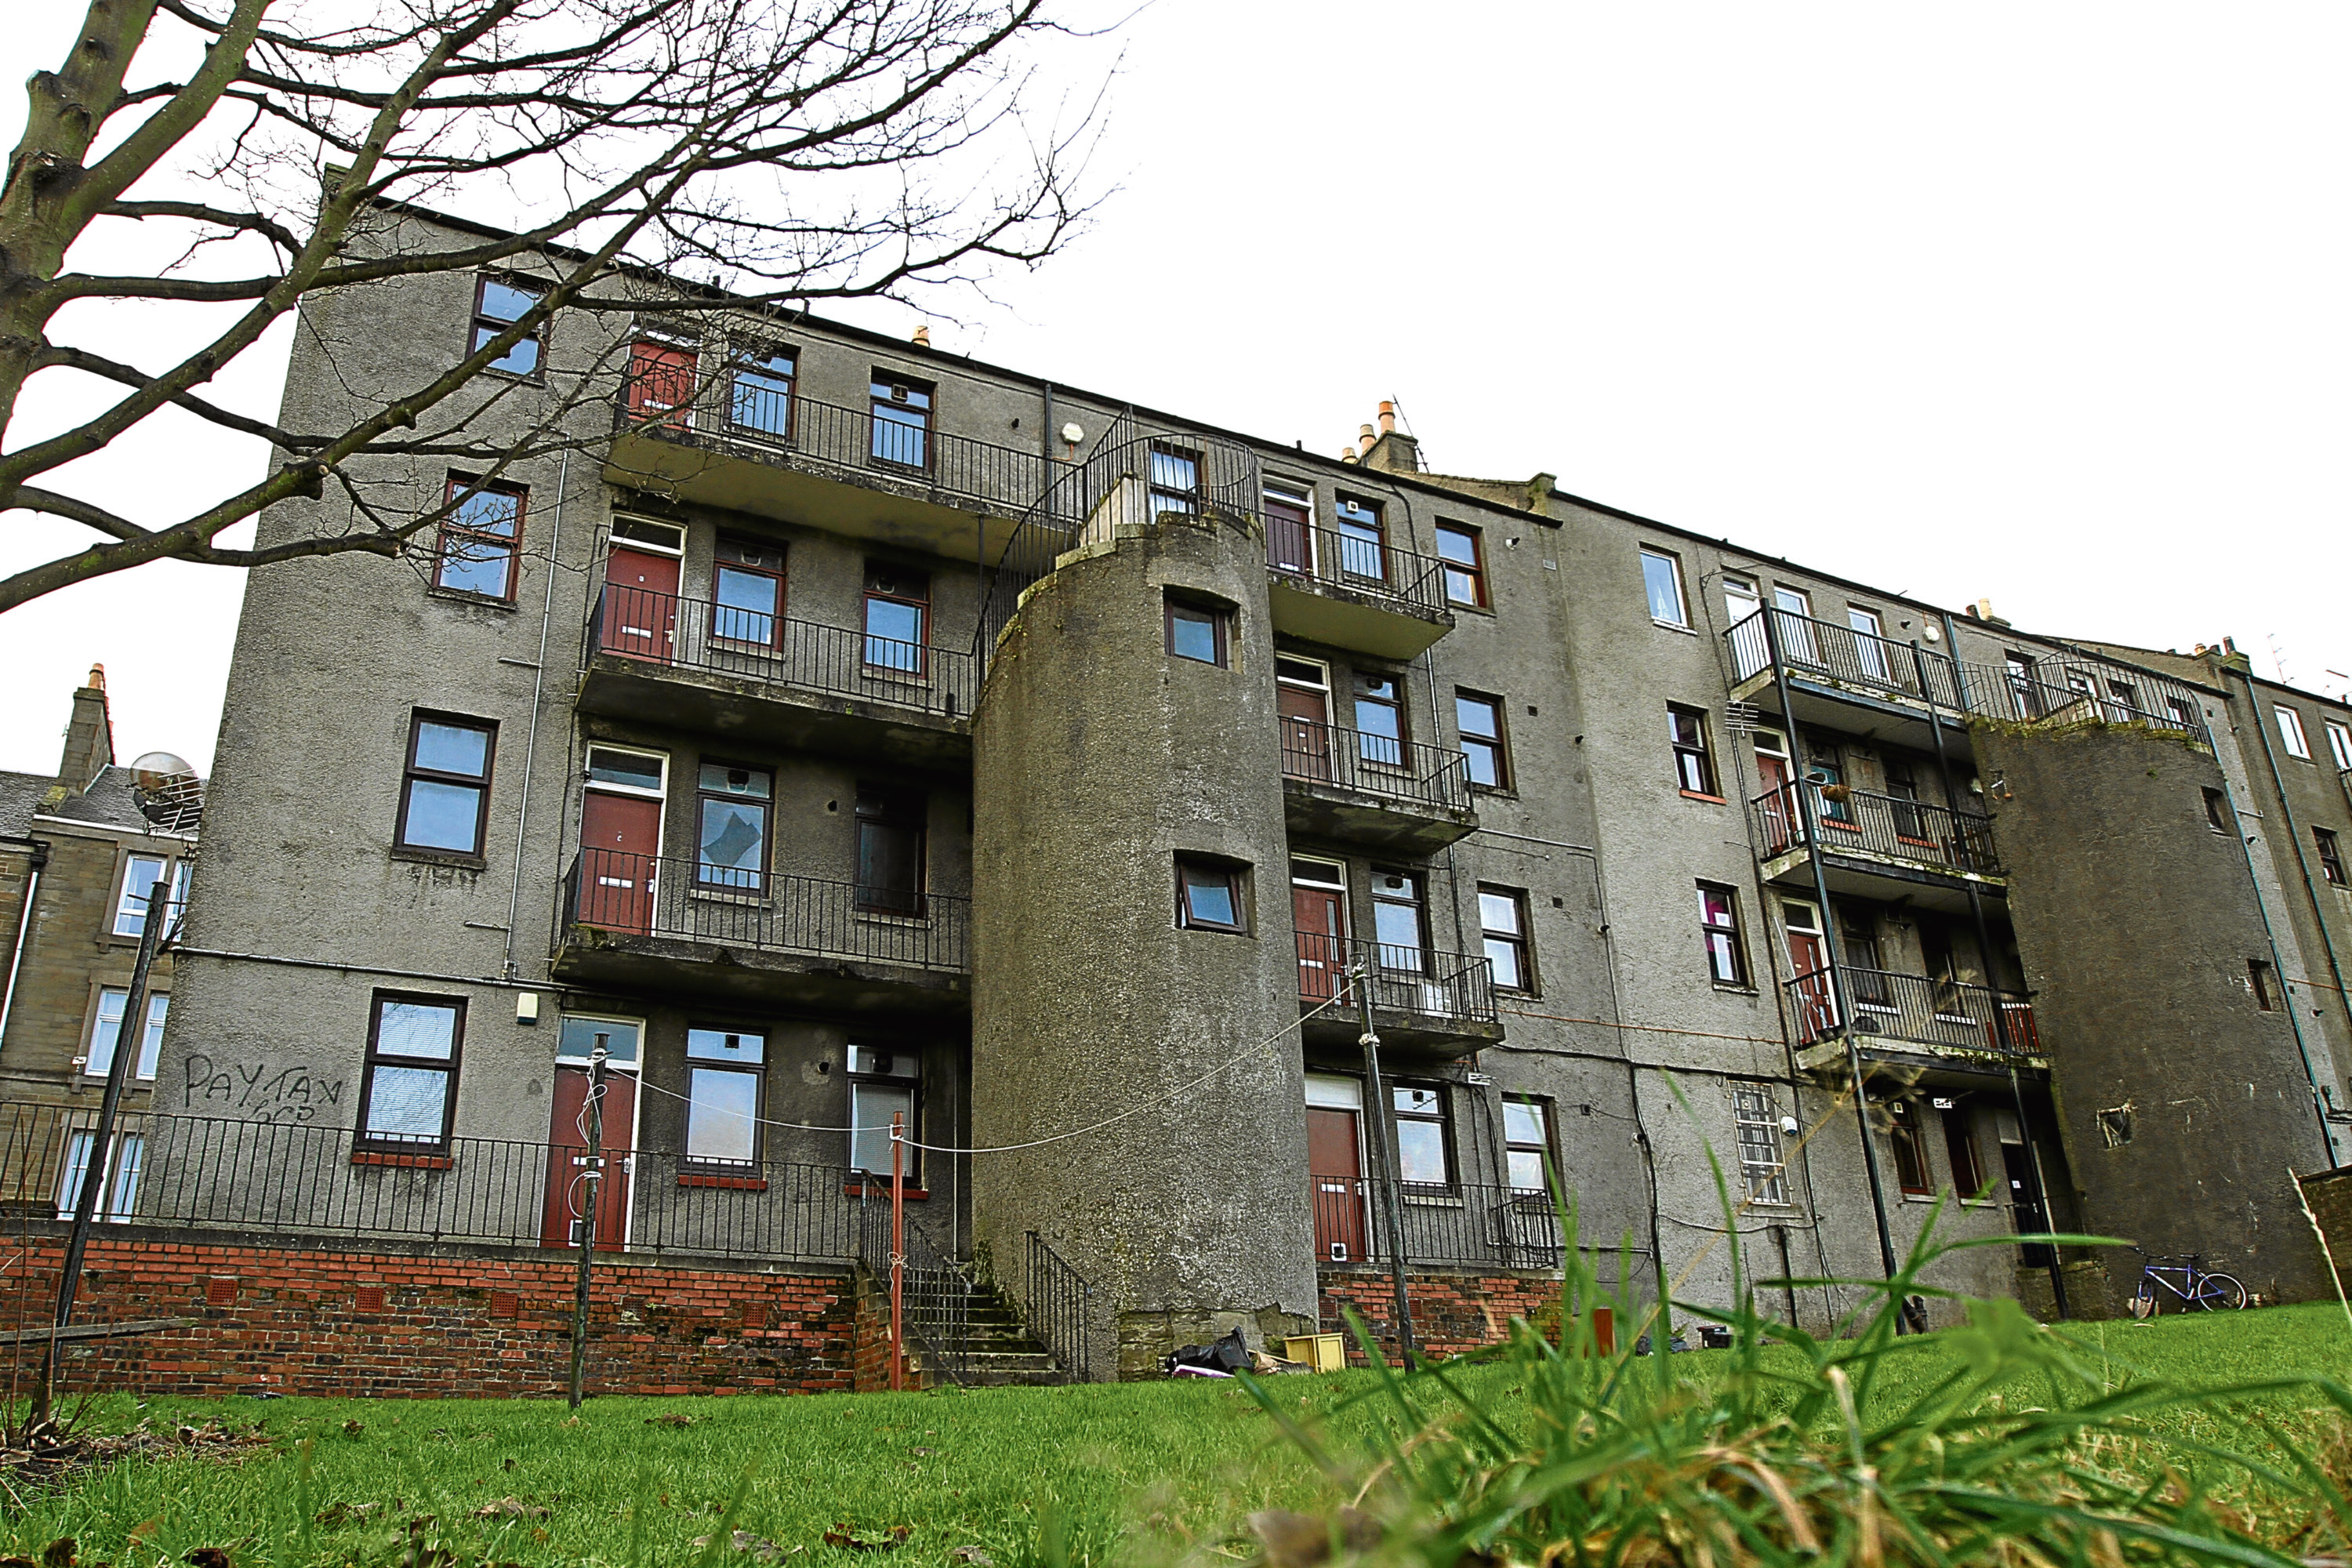 The block of flats at 219 to 245 Blackness Road